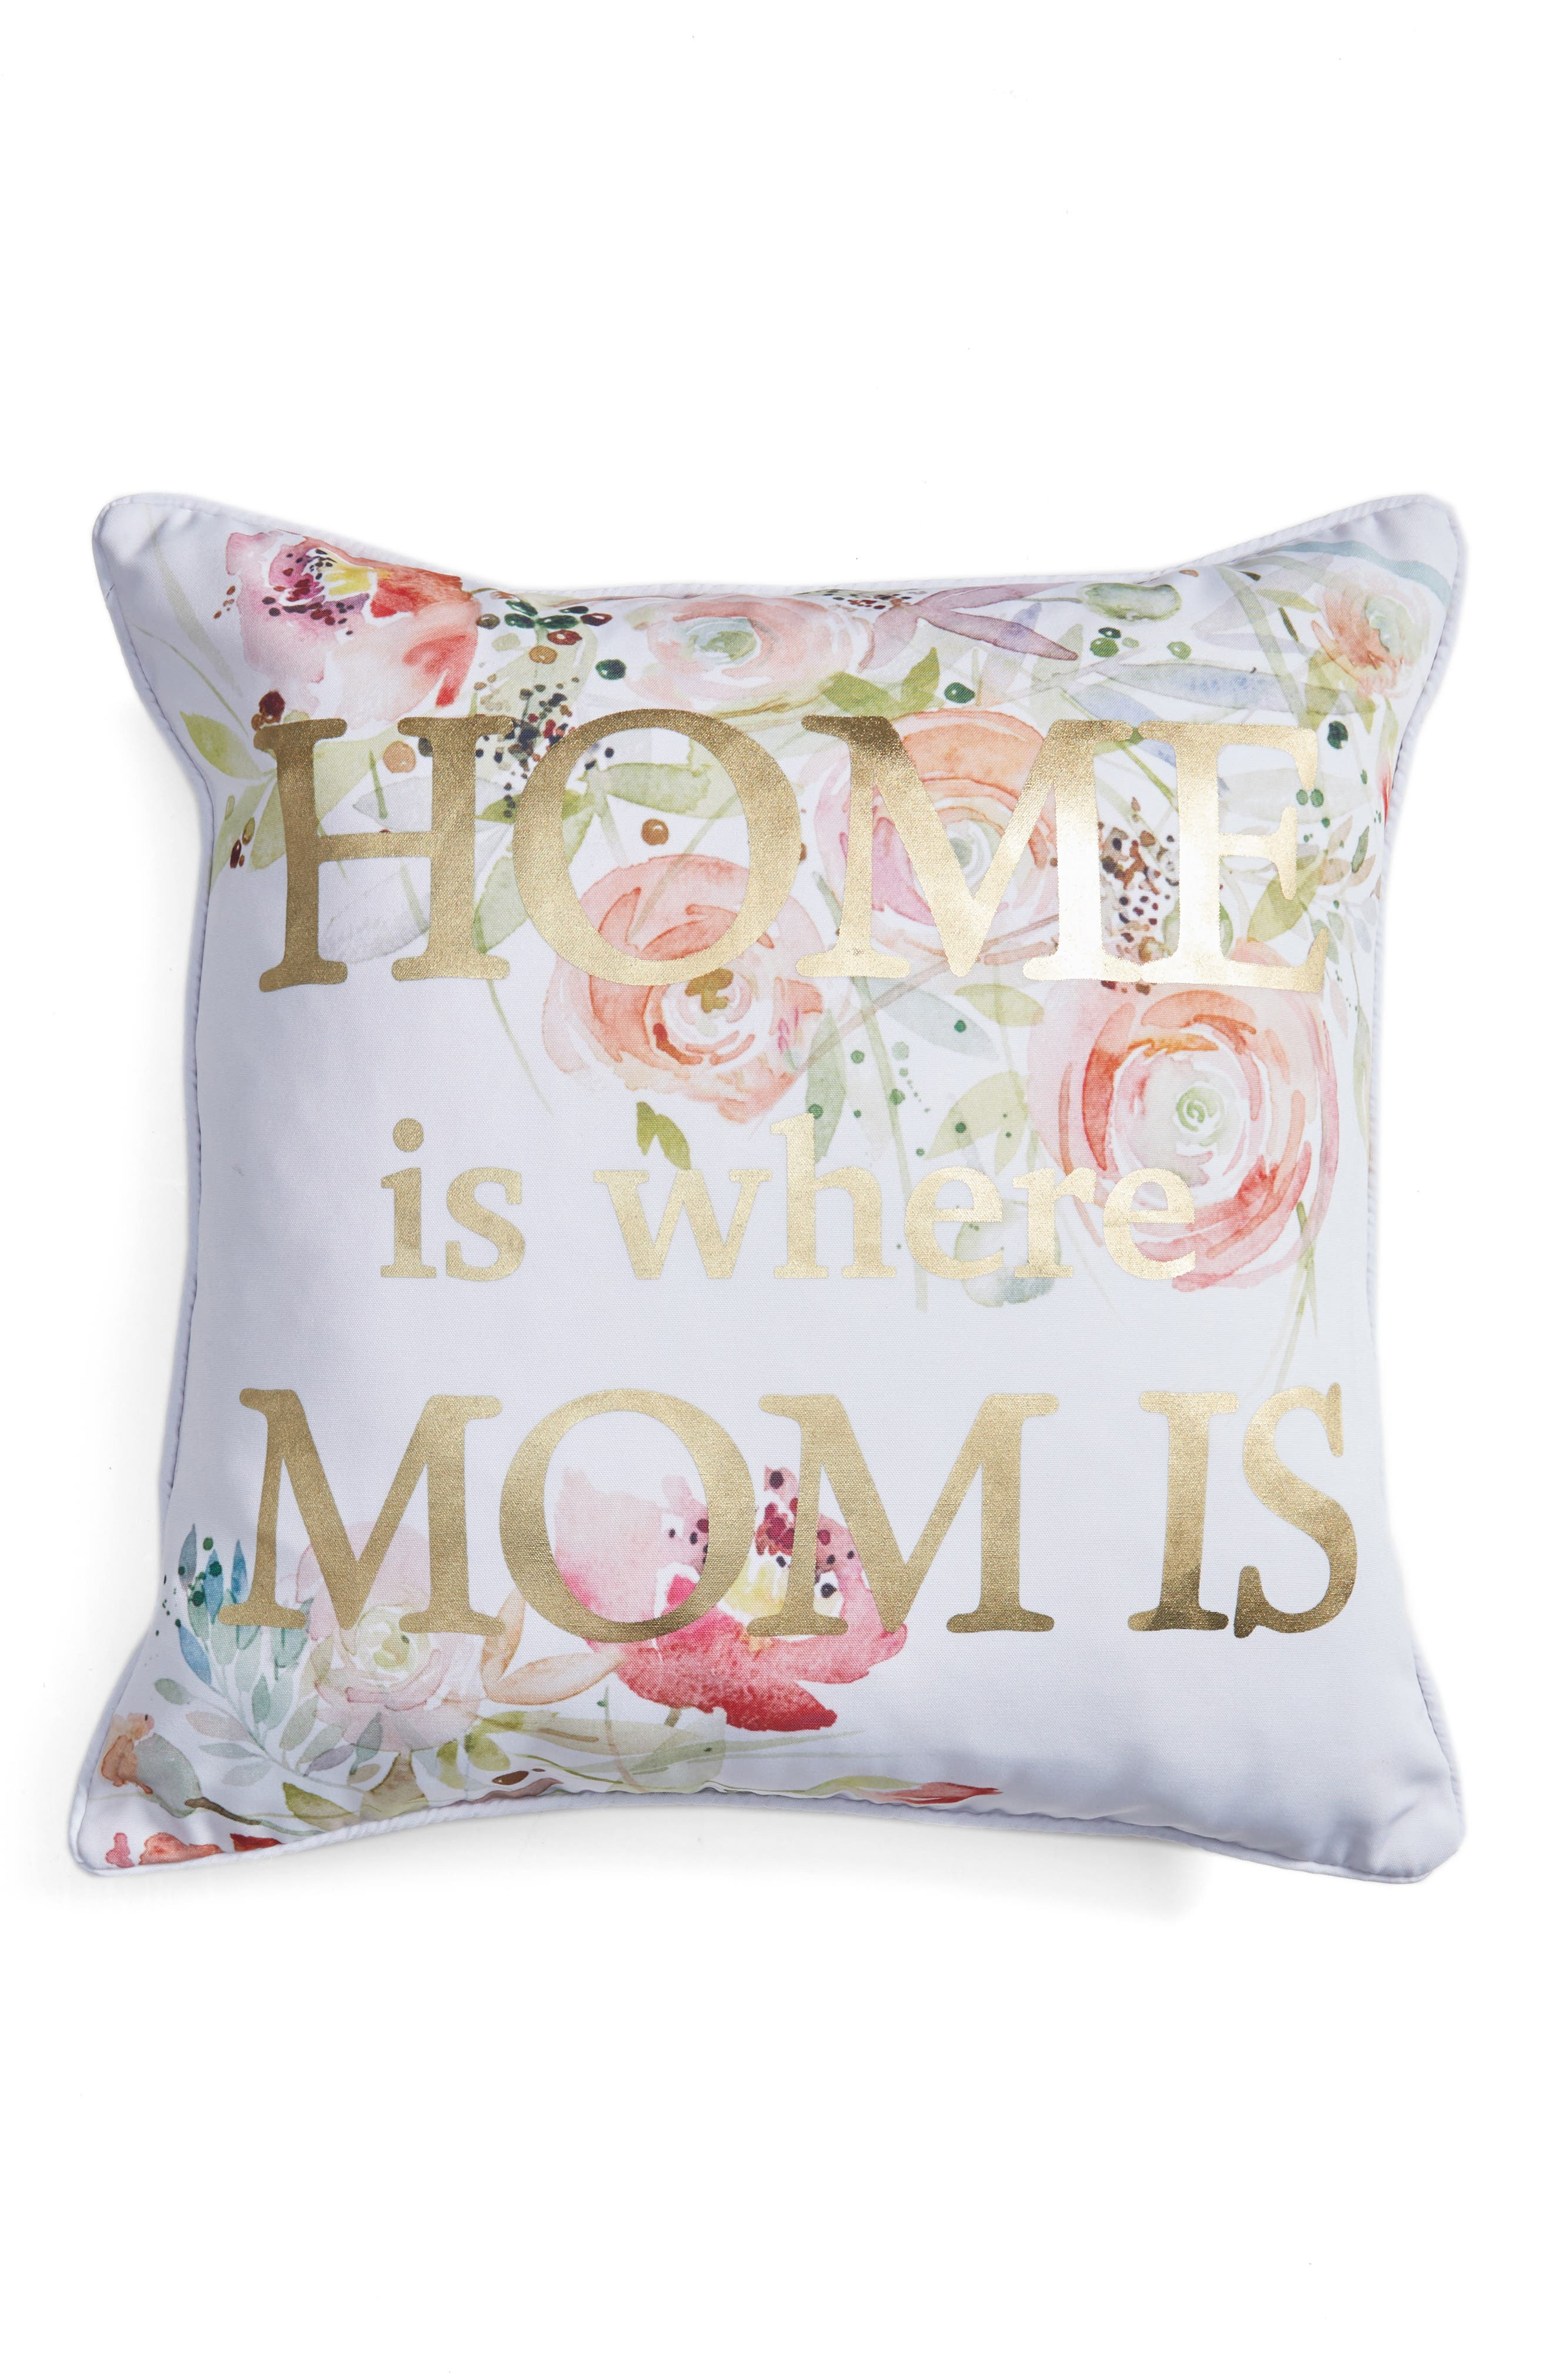 Home Is Where Mom Is Accent Pillow,                             Main thumbnail 1, color,                             White